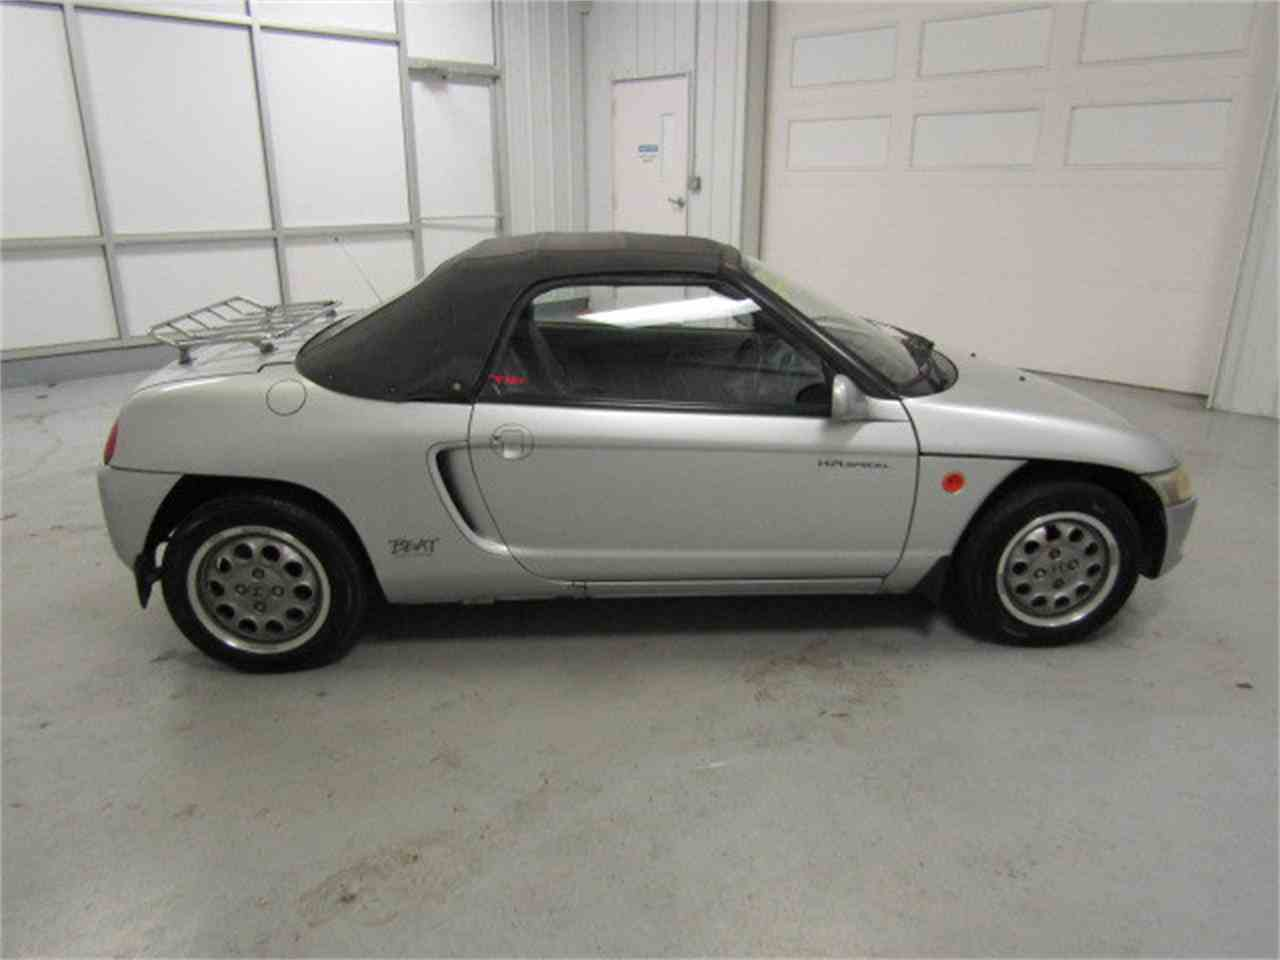 Large Picture of 1991 Honda Beat located in Virginia - $6,990.00 Offered by Duncan Imports & Classic Cars - K89C